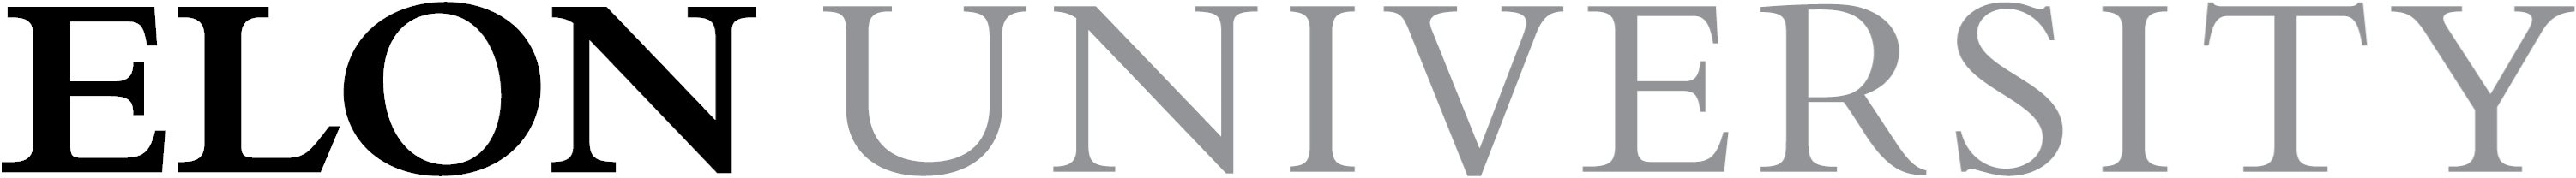 Elon University primary wordmark one-line one-color example